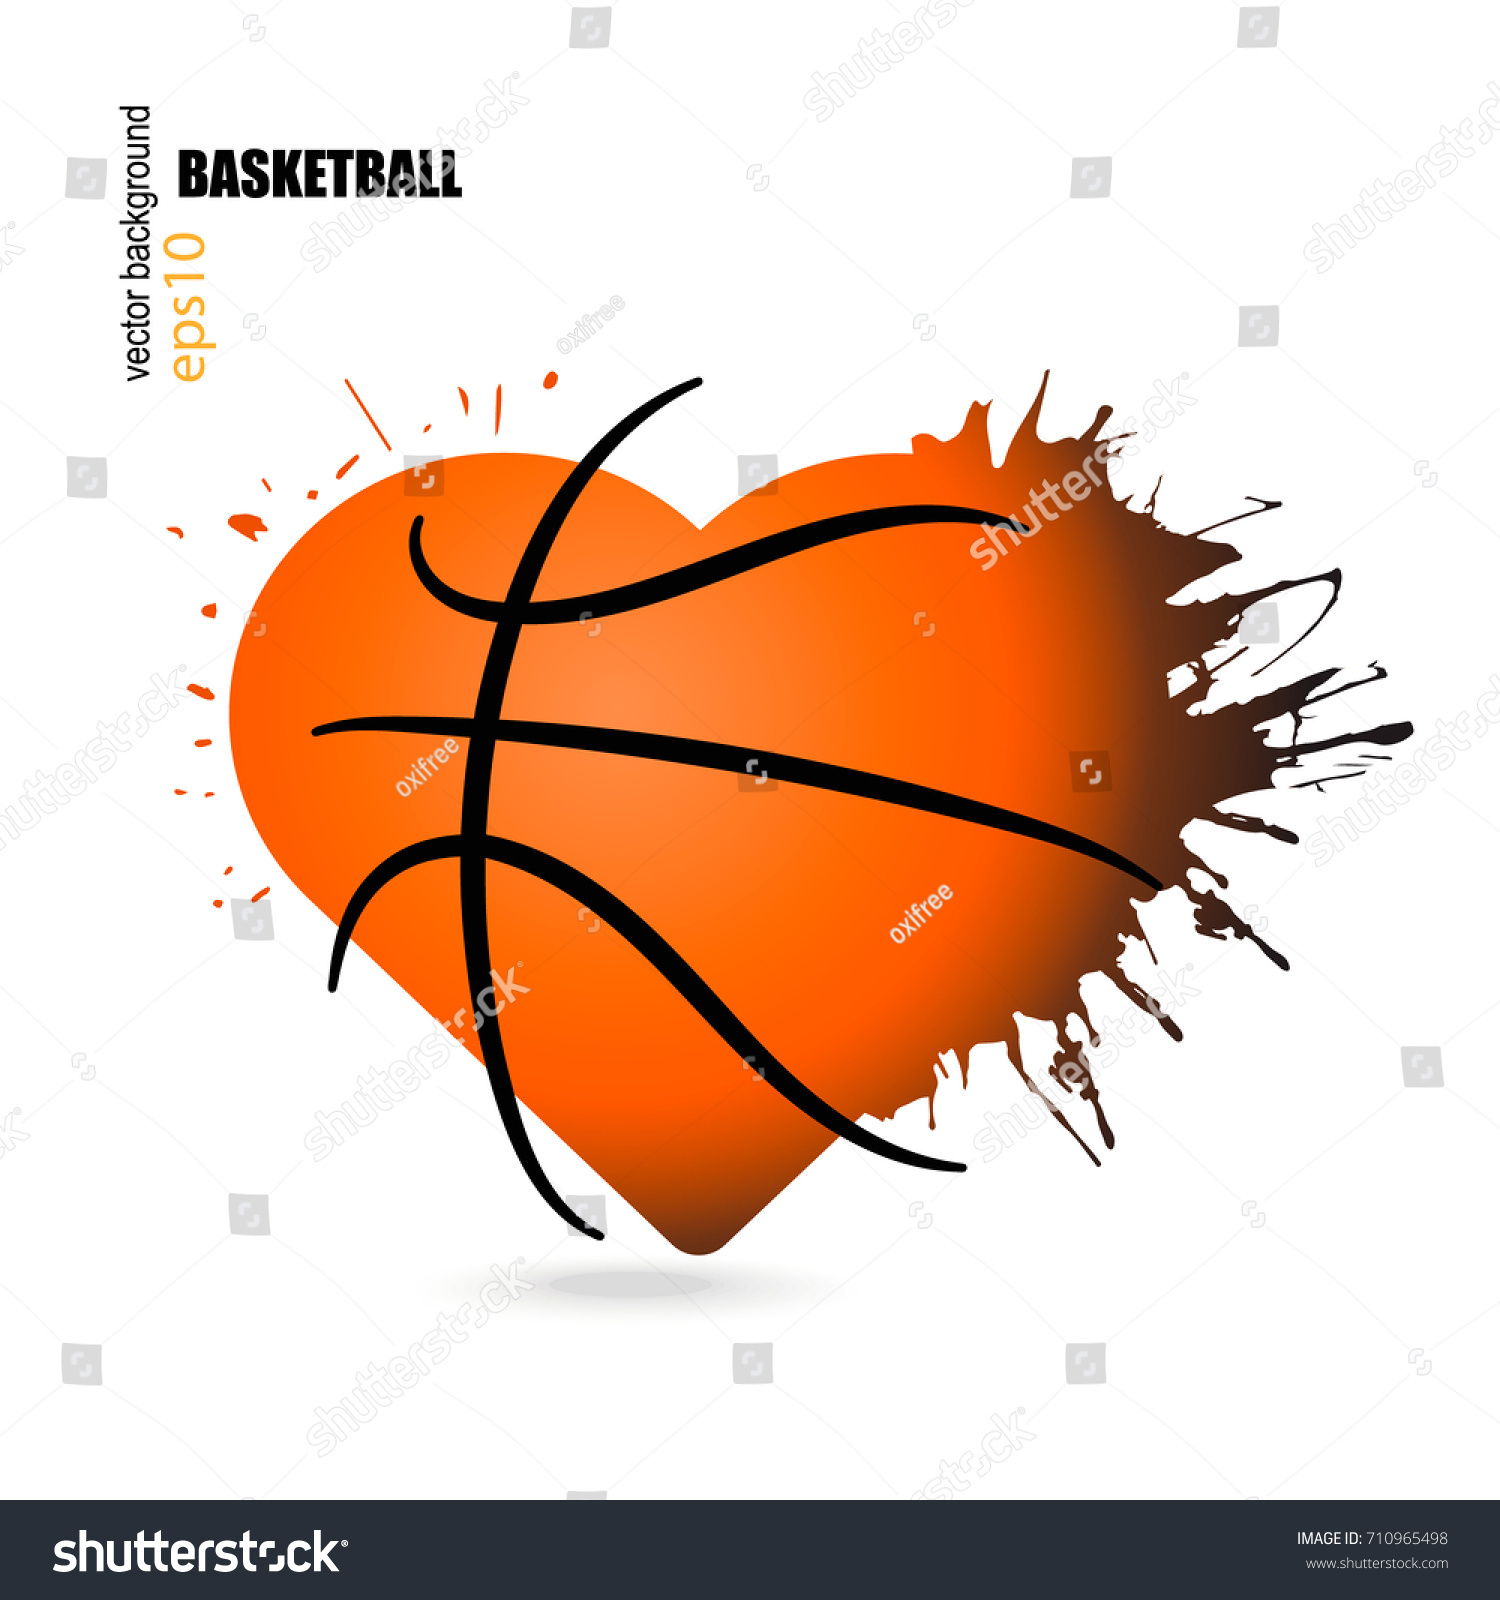 Vector object shape heart basketball handdrawing stock vector vector object in the shape of a heart for basketball hand drawing splashes biocorpaavc Choice Image